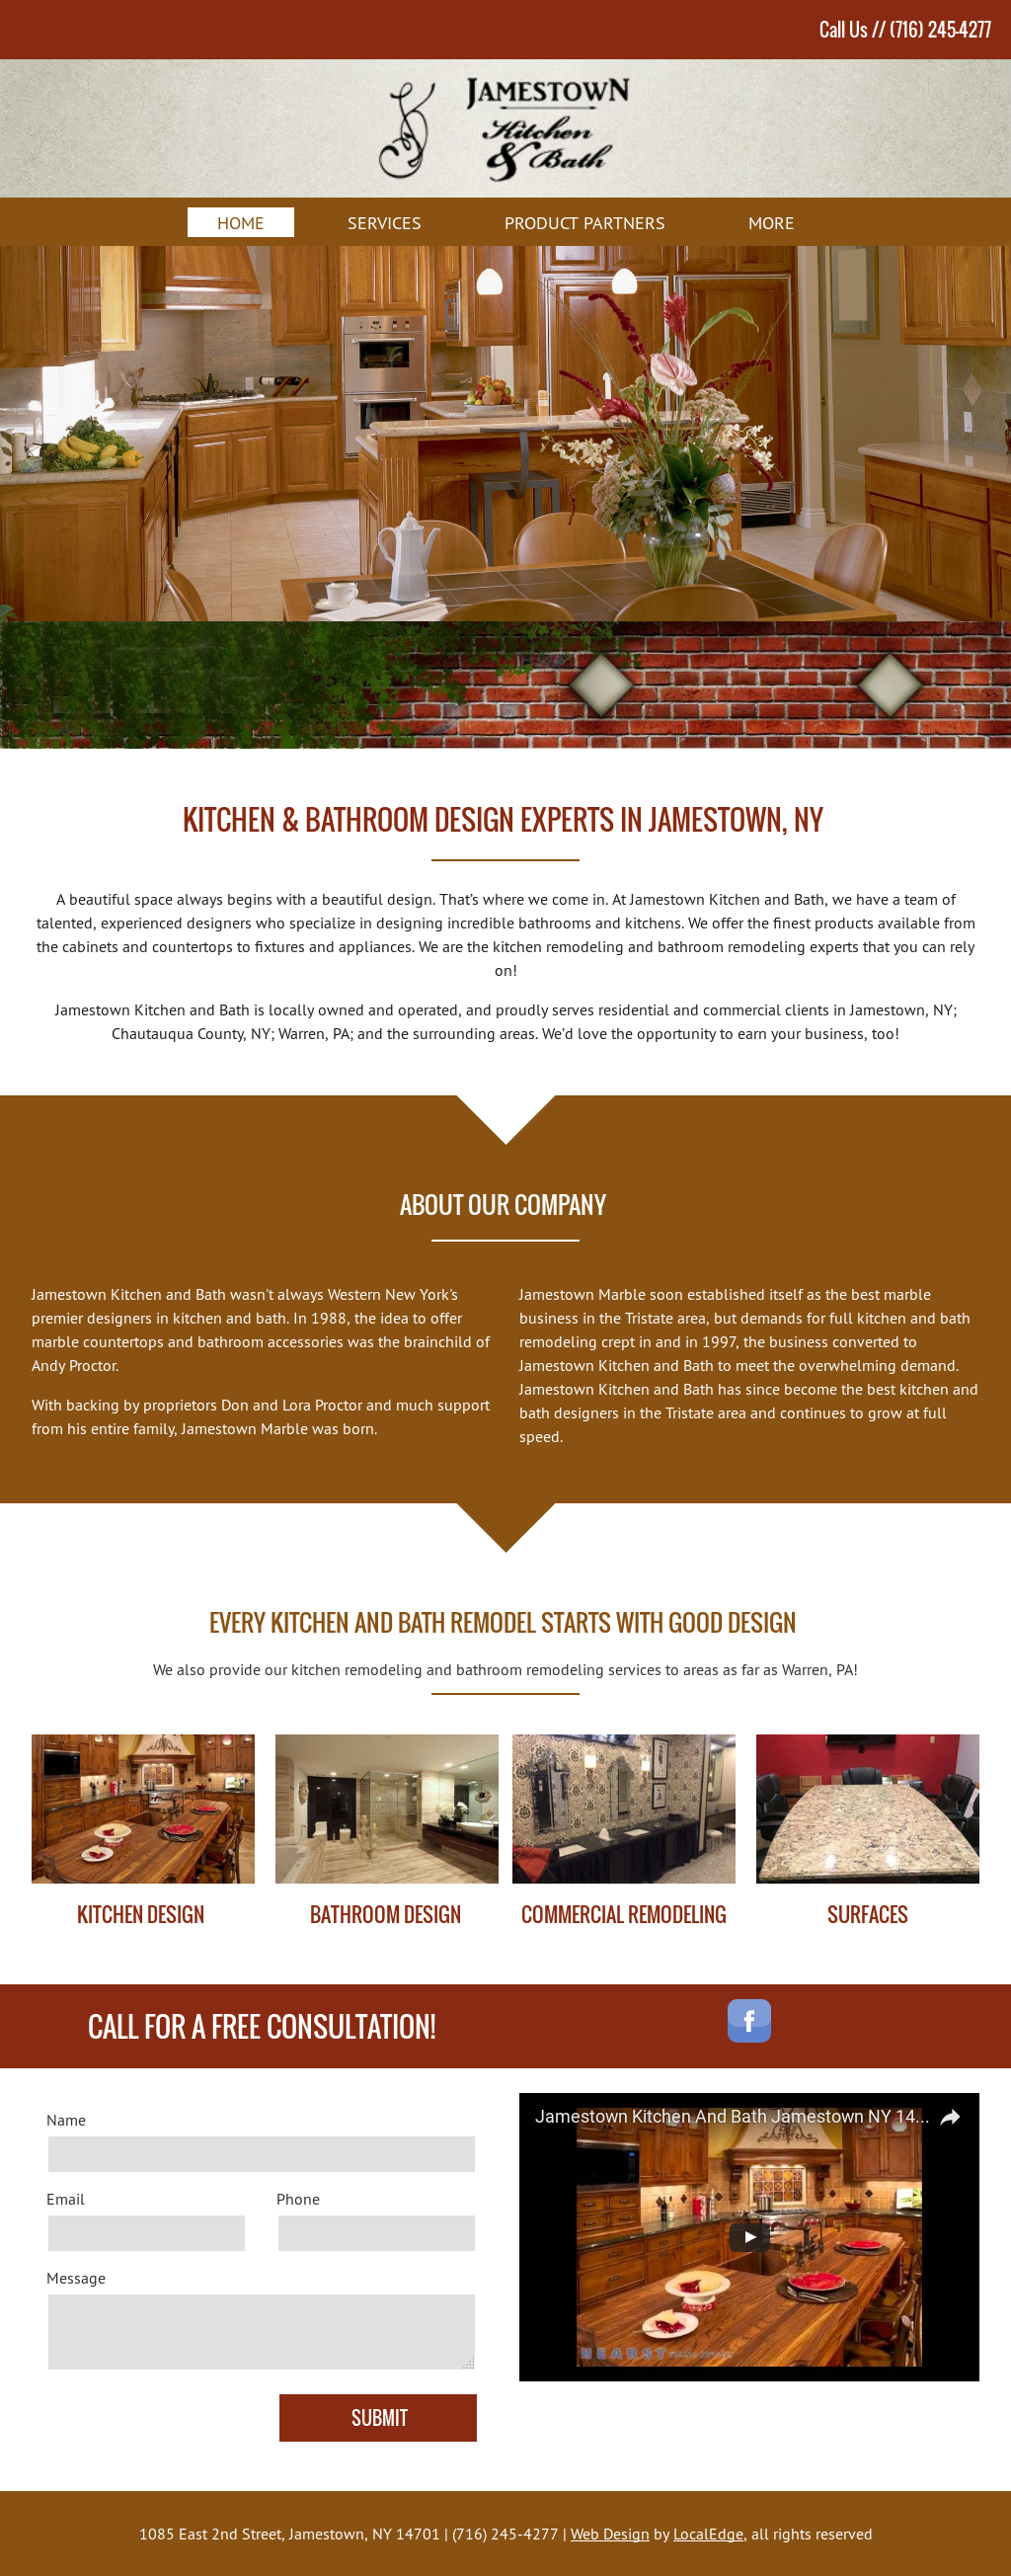 Jamestown Kitchen & Bath Competitors, Revenue and Employees - Owler ...